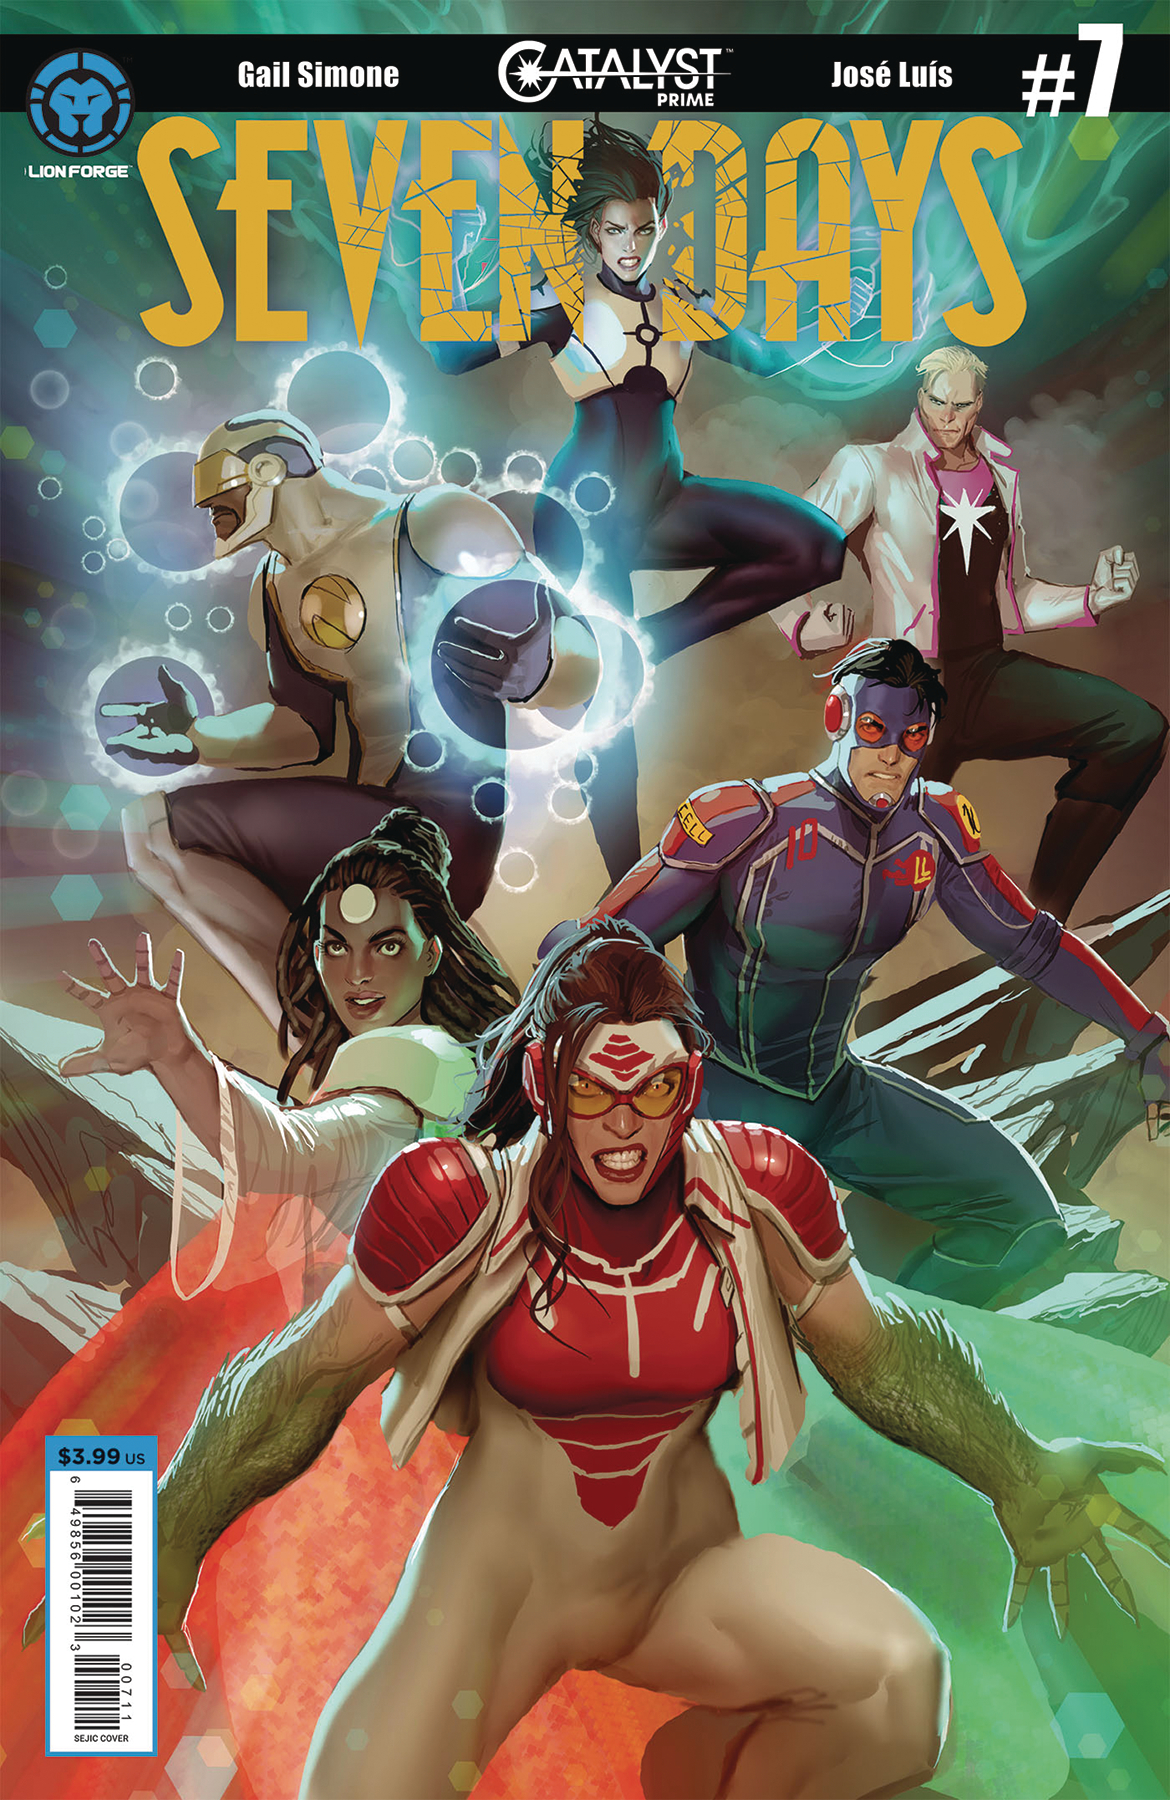 CATALYST PRIME SEVEN DAYS #7 (OF 7) CVR A SEJIC